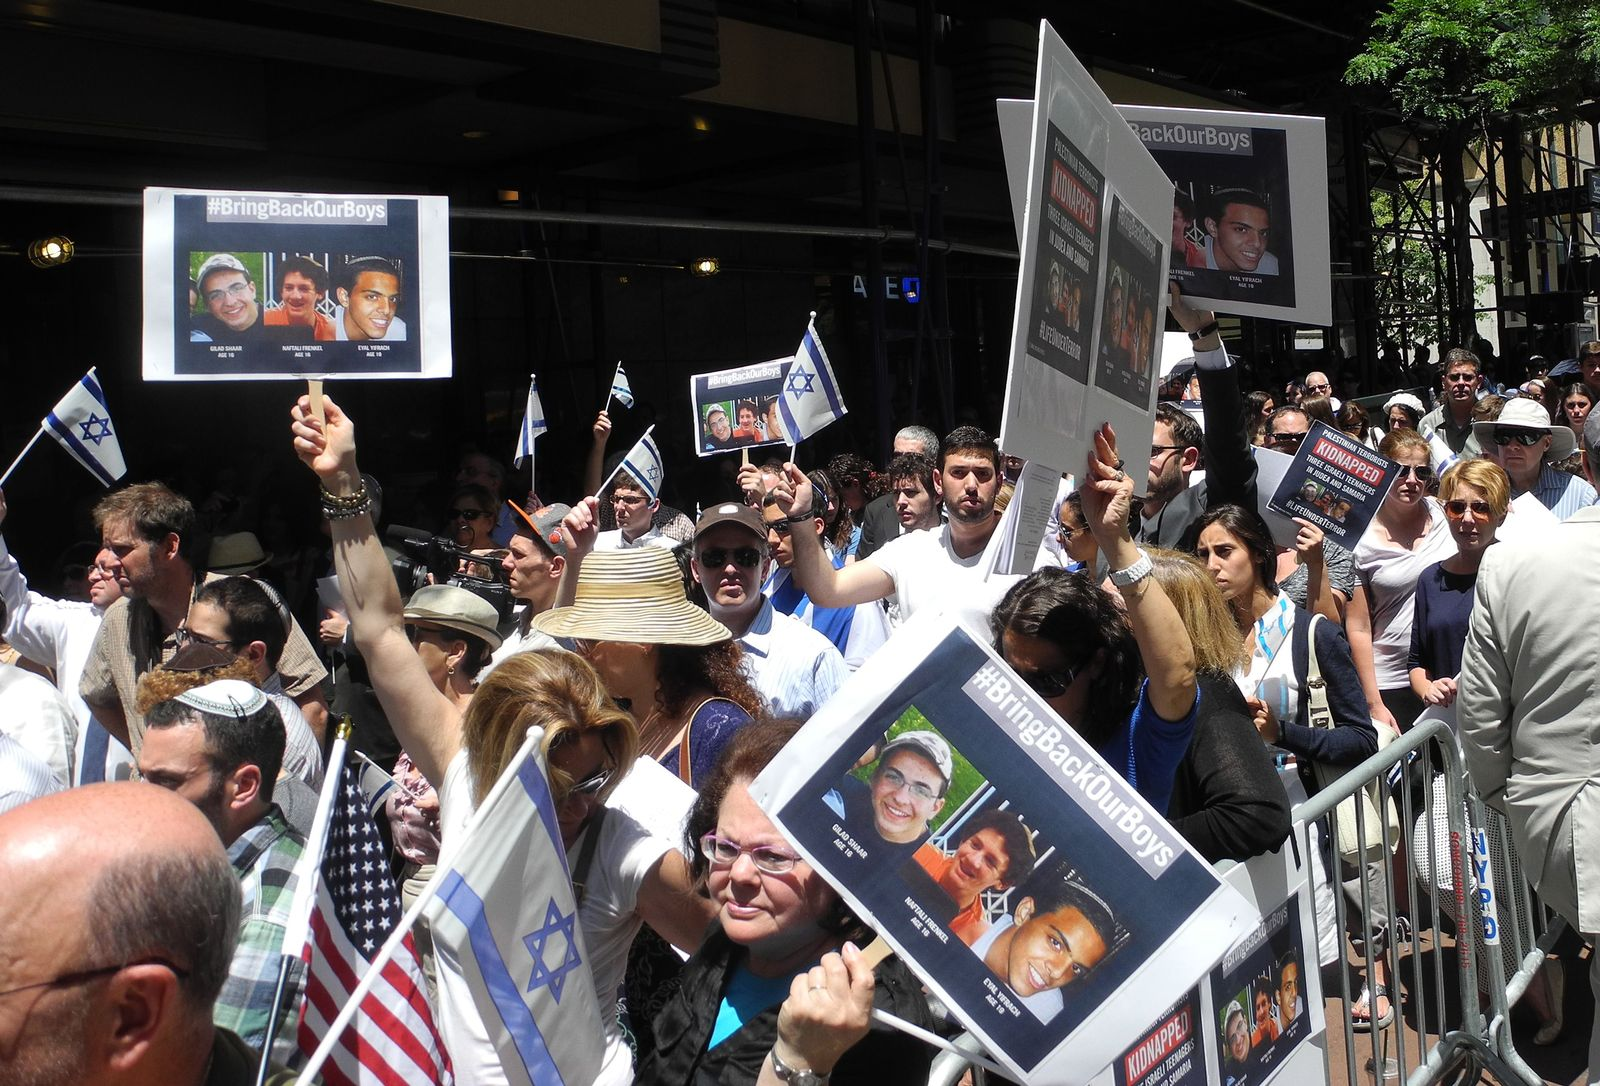 US-ISRAEL-PALESTINIANS-CONFLICT-KIDNAPPING-DEMO